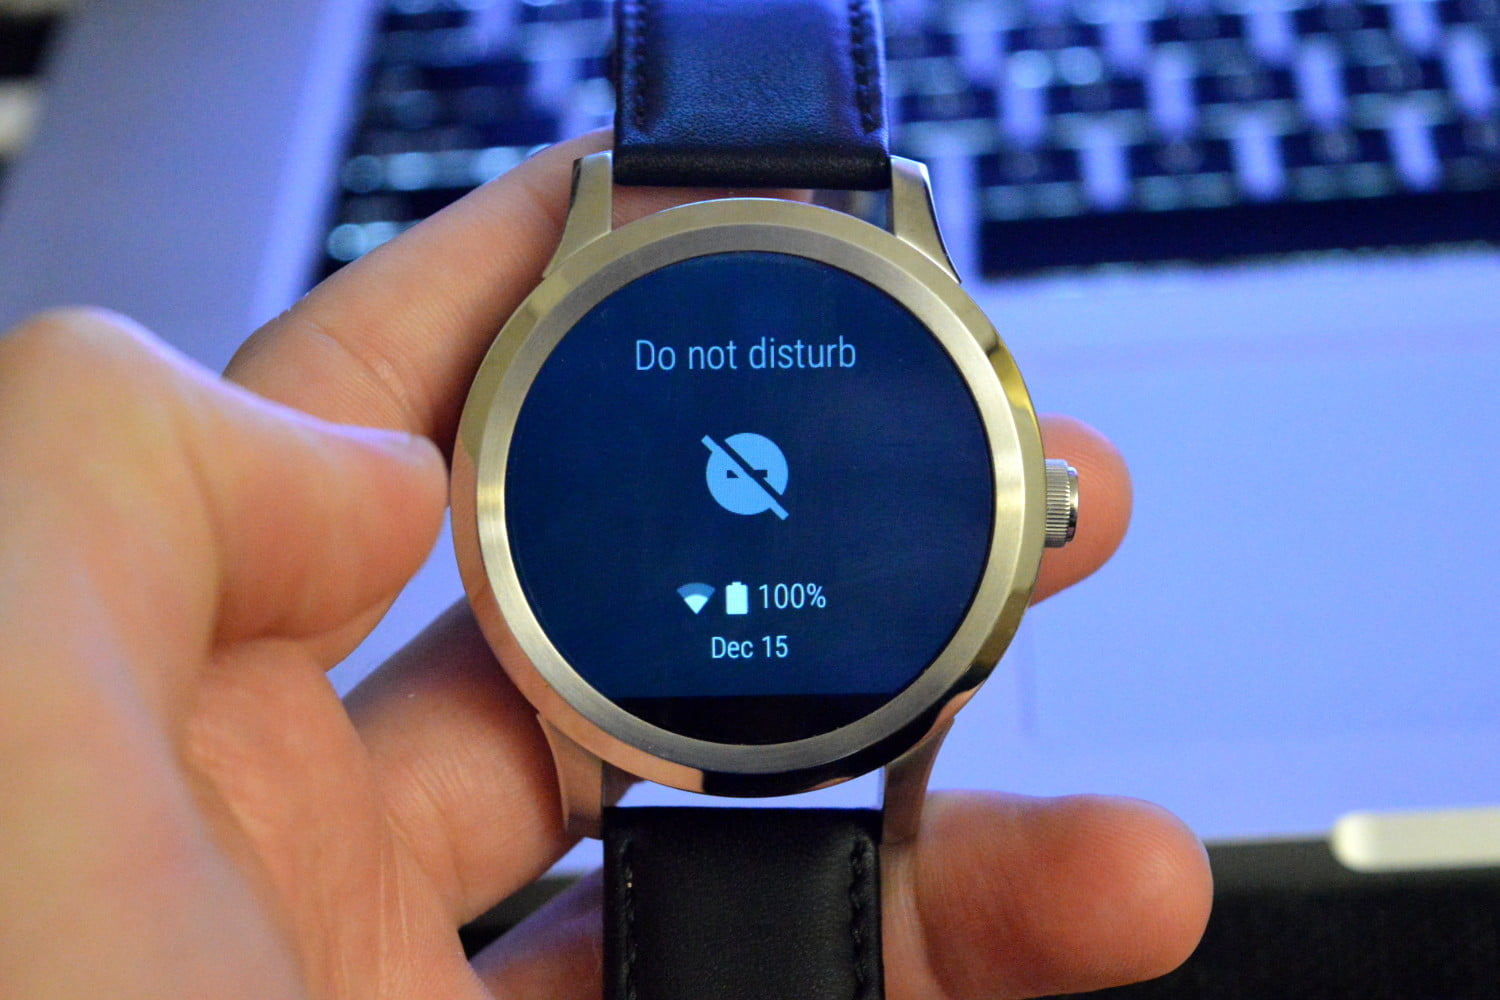 android-wear-do-not-disturb